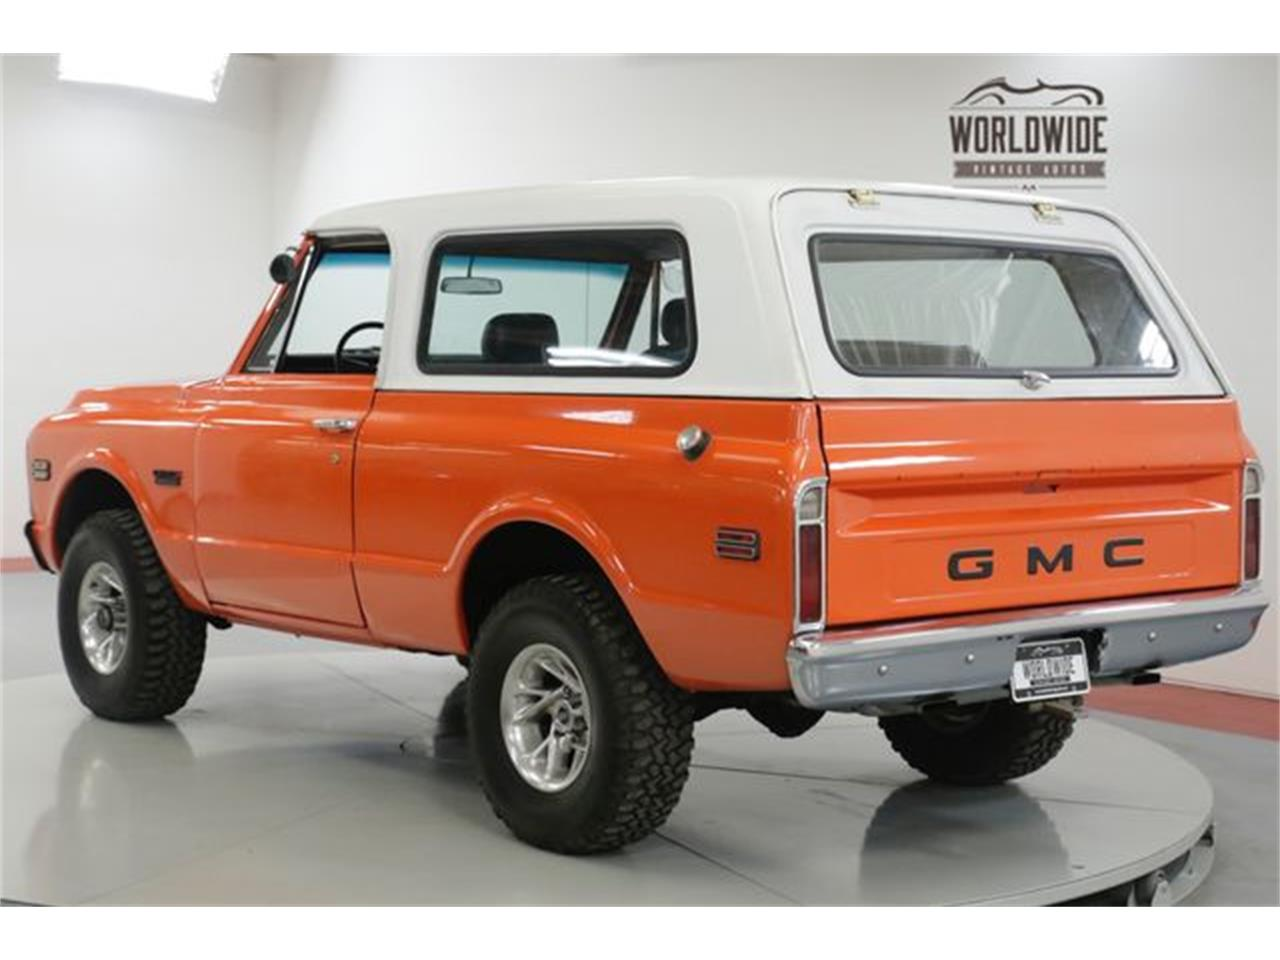 Large Picture of '70 GMC Jimmy - $27,900.00 Offered by Worldwide Vintage Autos - PH20